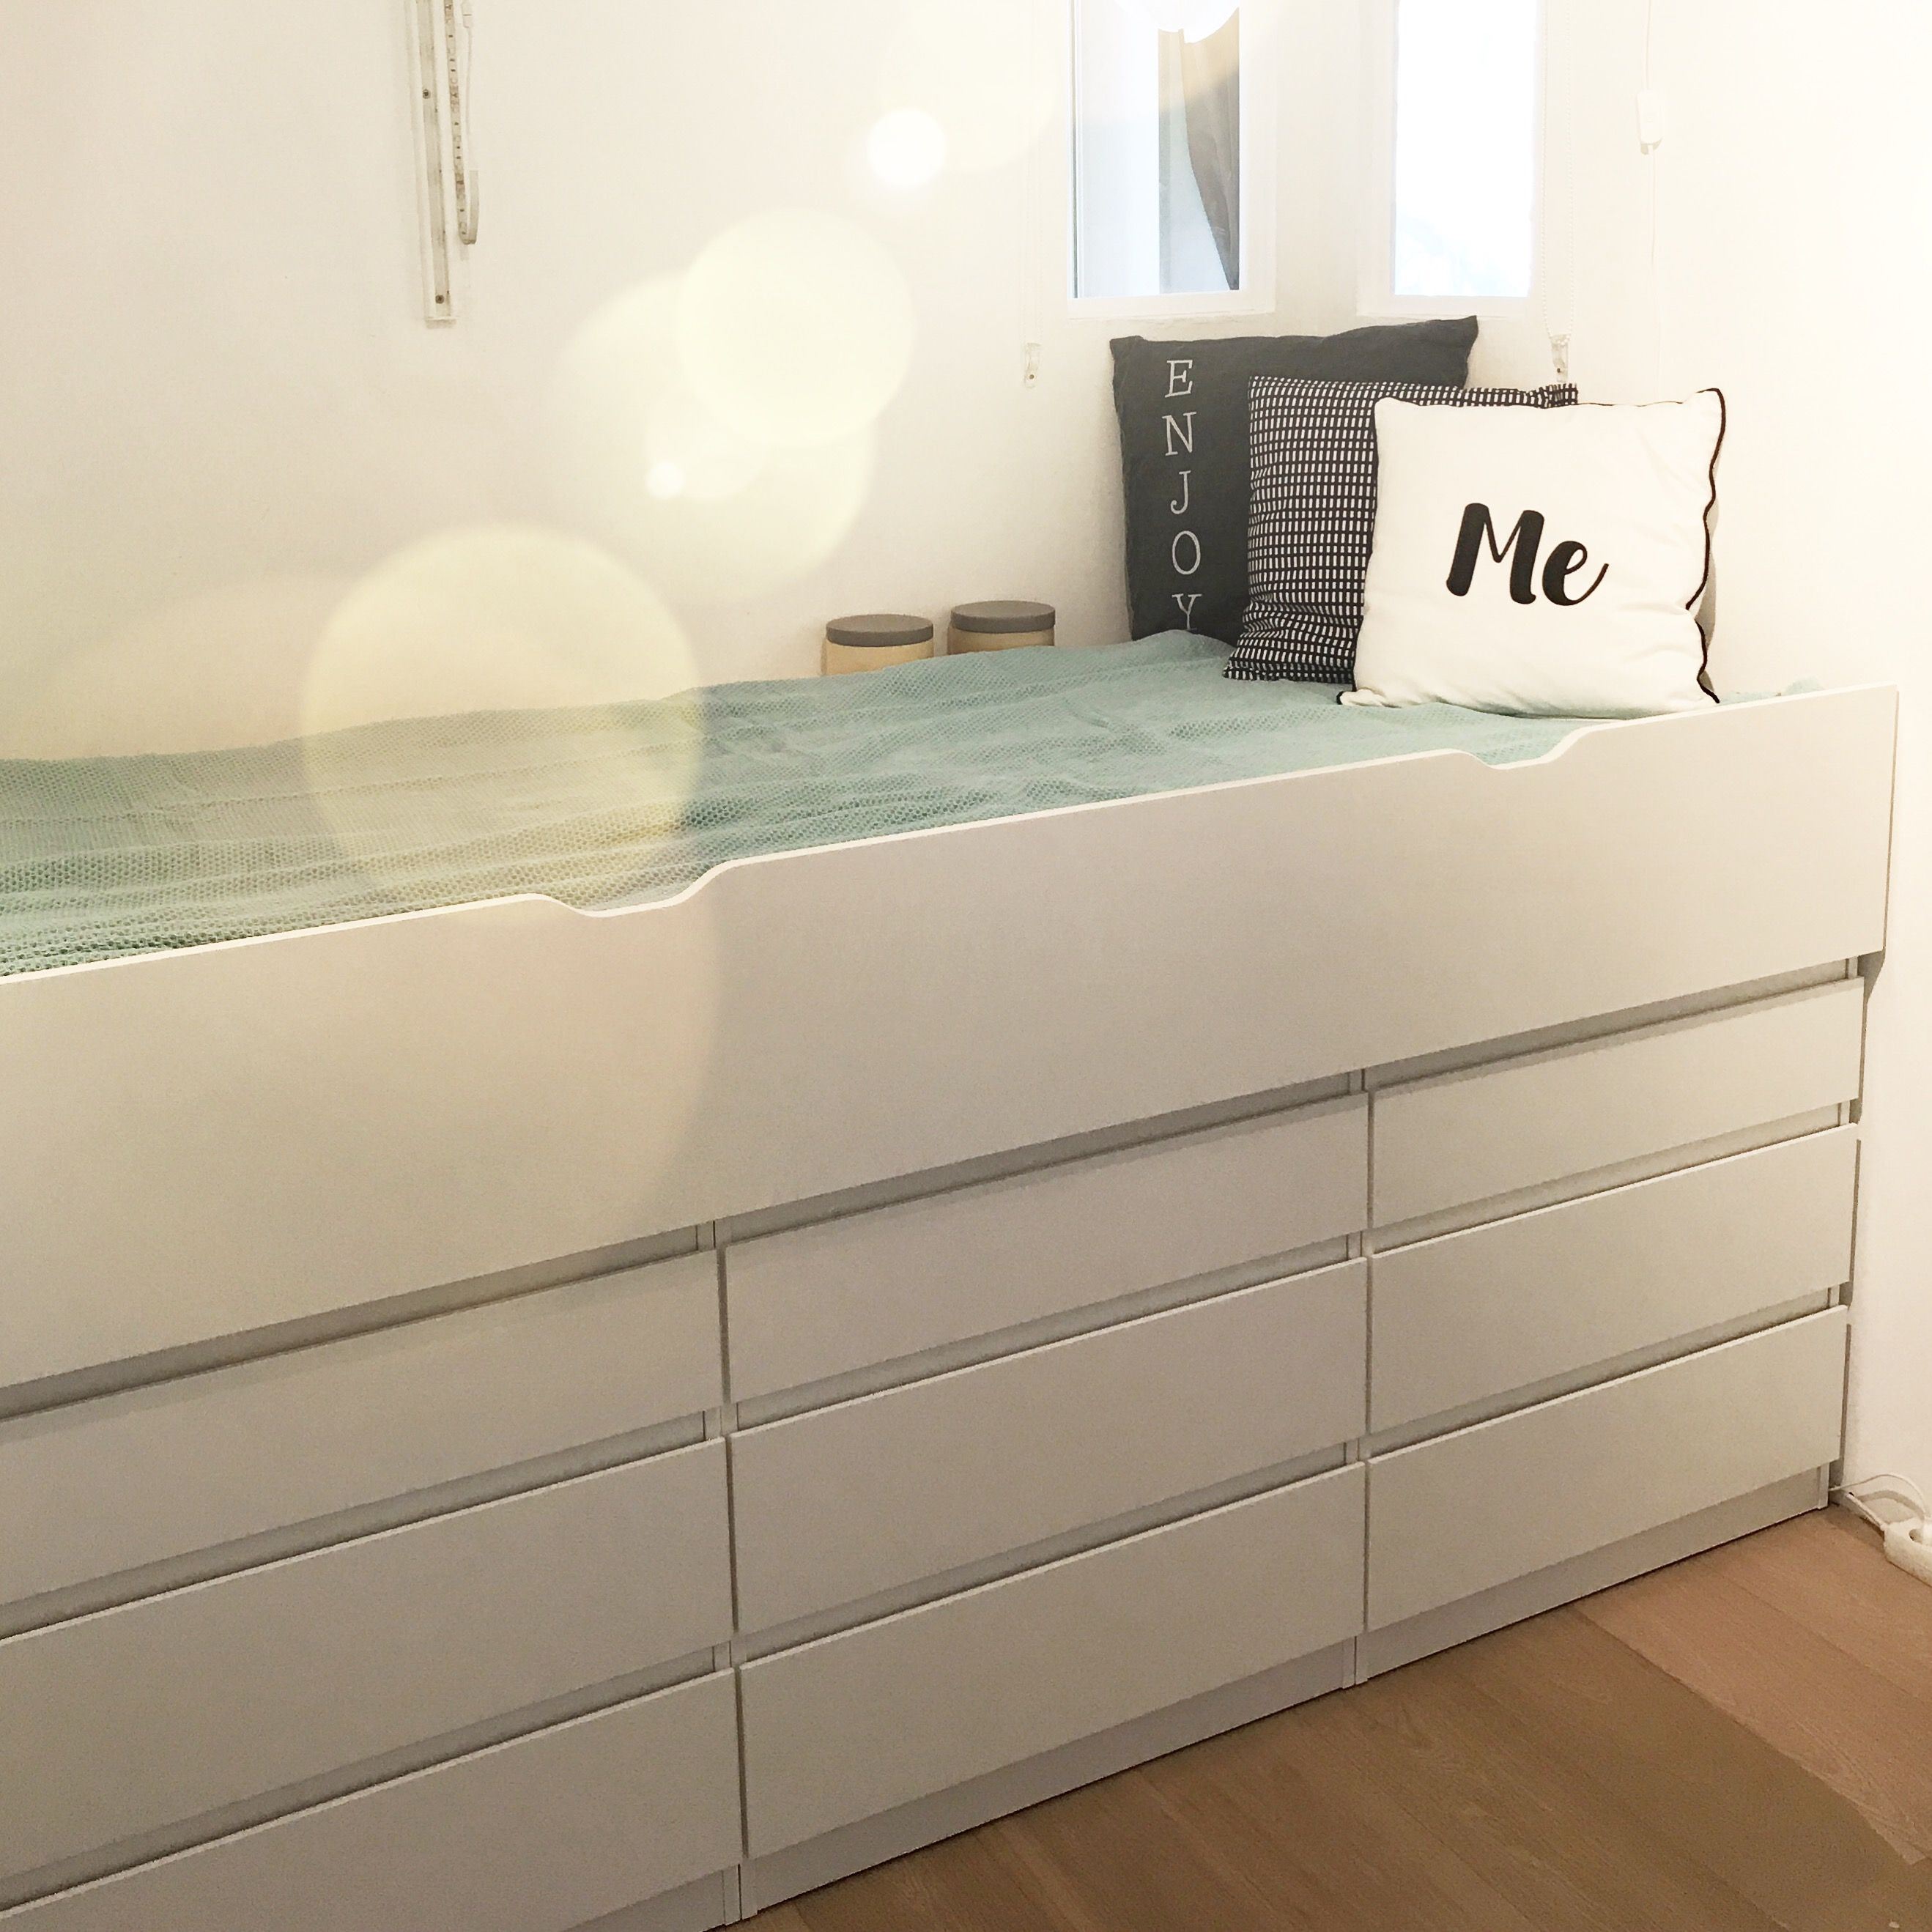 Ikea Hack Made By Kreativkafer 3 Kullen Kommoden Unterbettkasten Flaxa Alles Von Ikea Hinten Unterbettkasten Bett Mobel Schlafzimmerideen Fur Kleine Raume